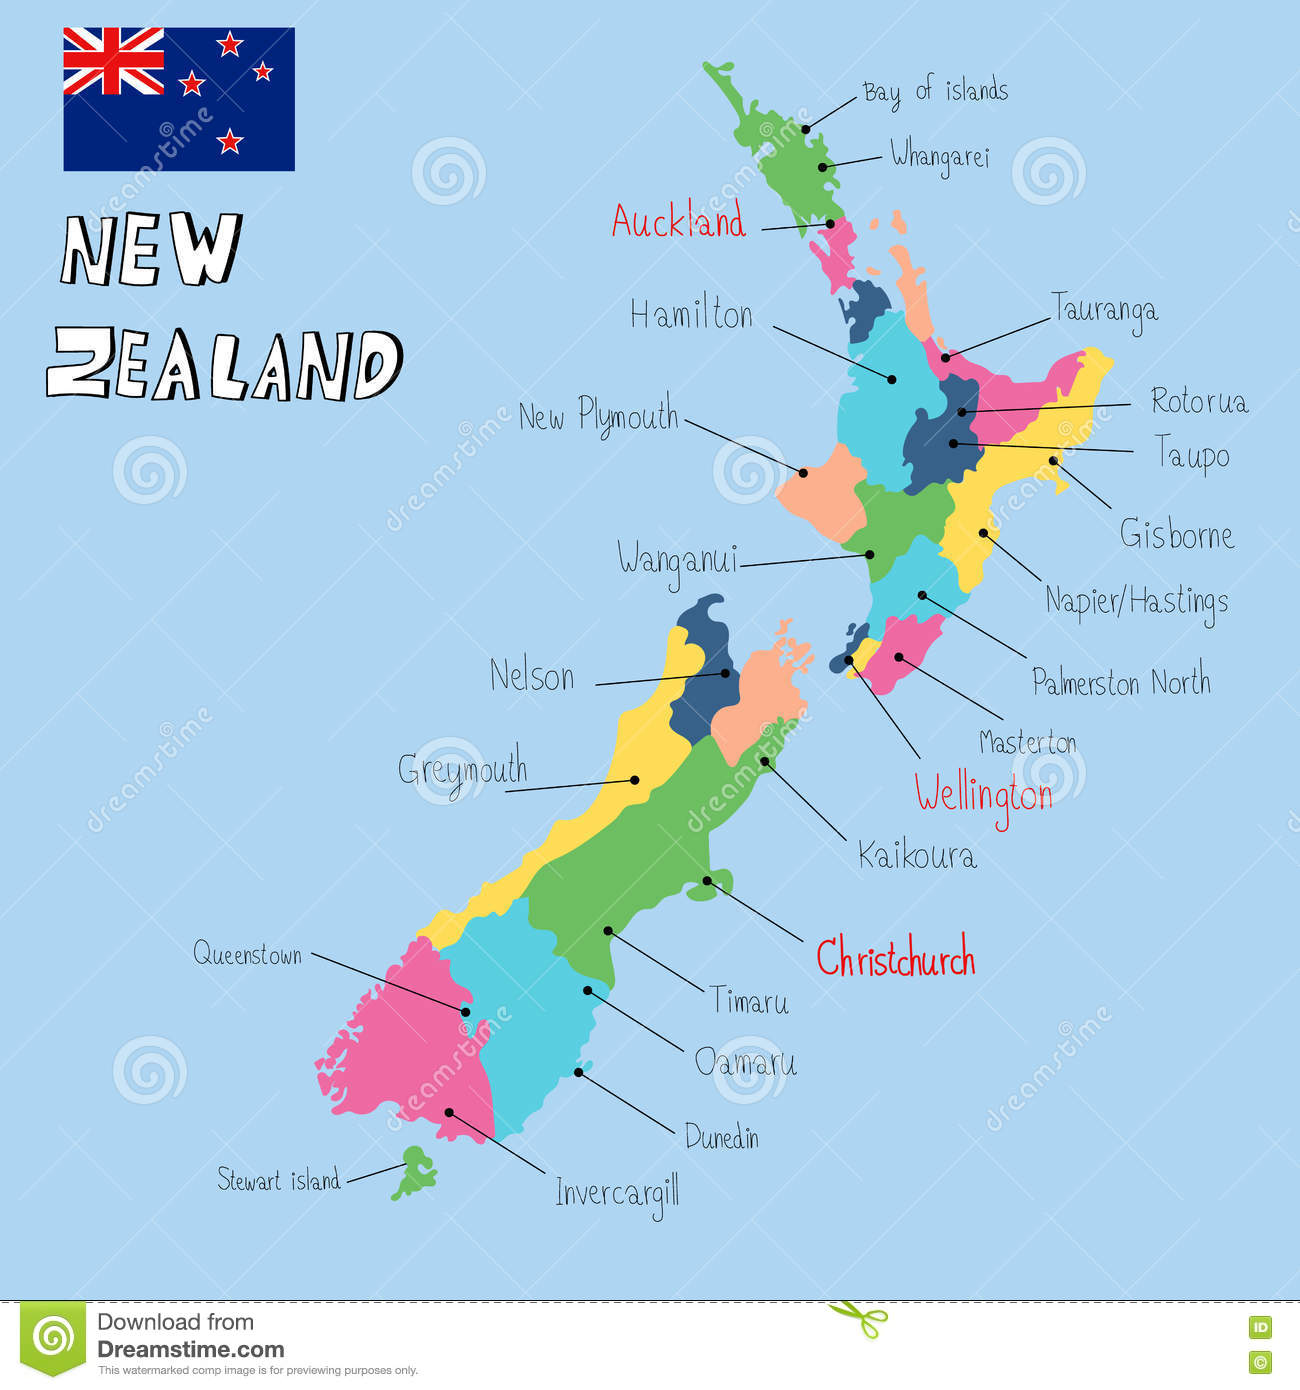 Where Is Christchurch New Zealand On The Map.New Zealand Map Hand Draw Vector Stock Vector Illustration Of